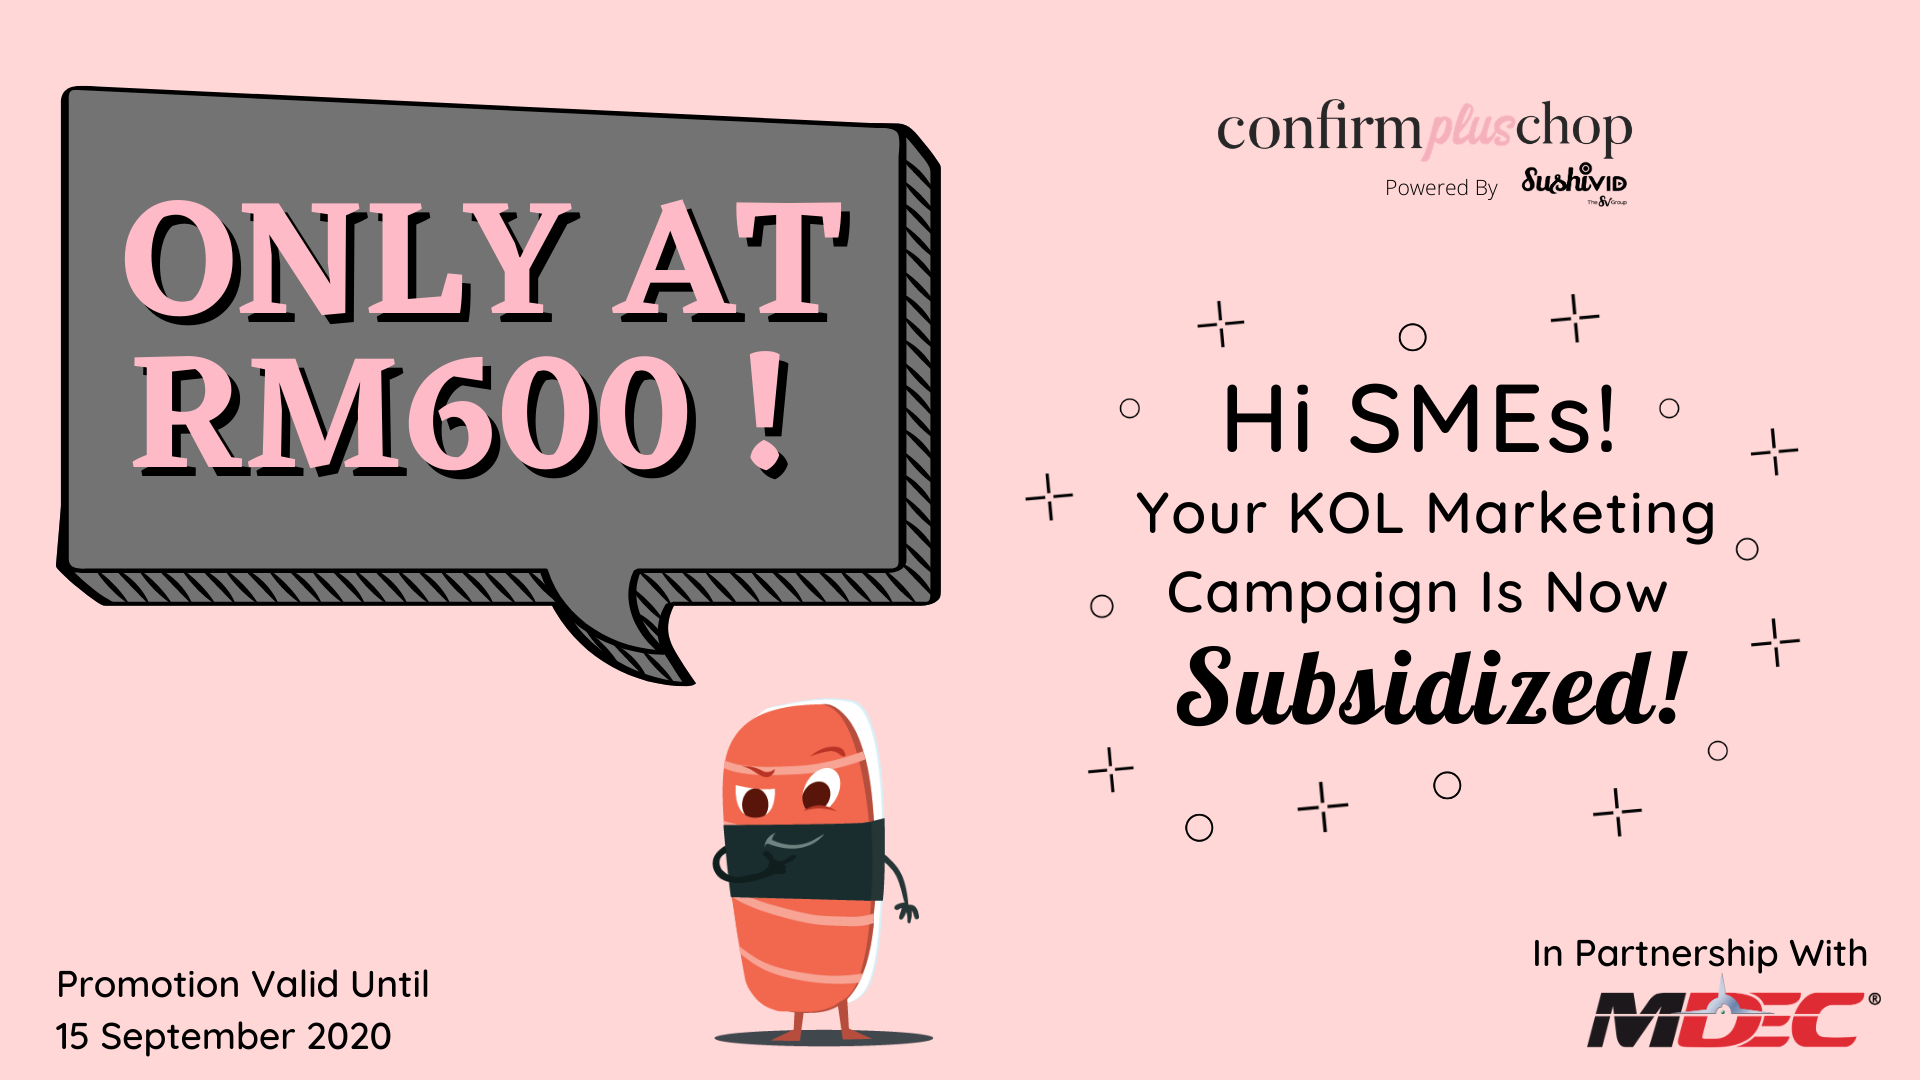 Hi SMEs! Your KOL Marketing Campaign Is Now Subsidized!